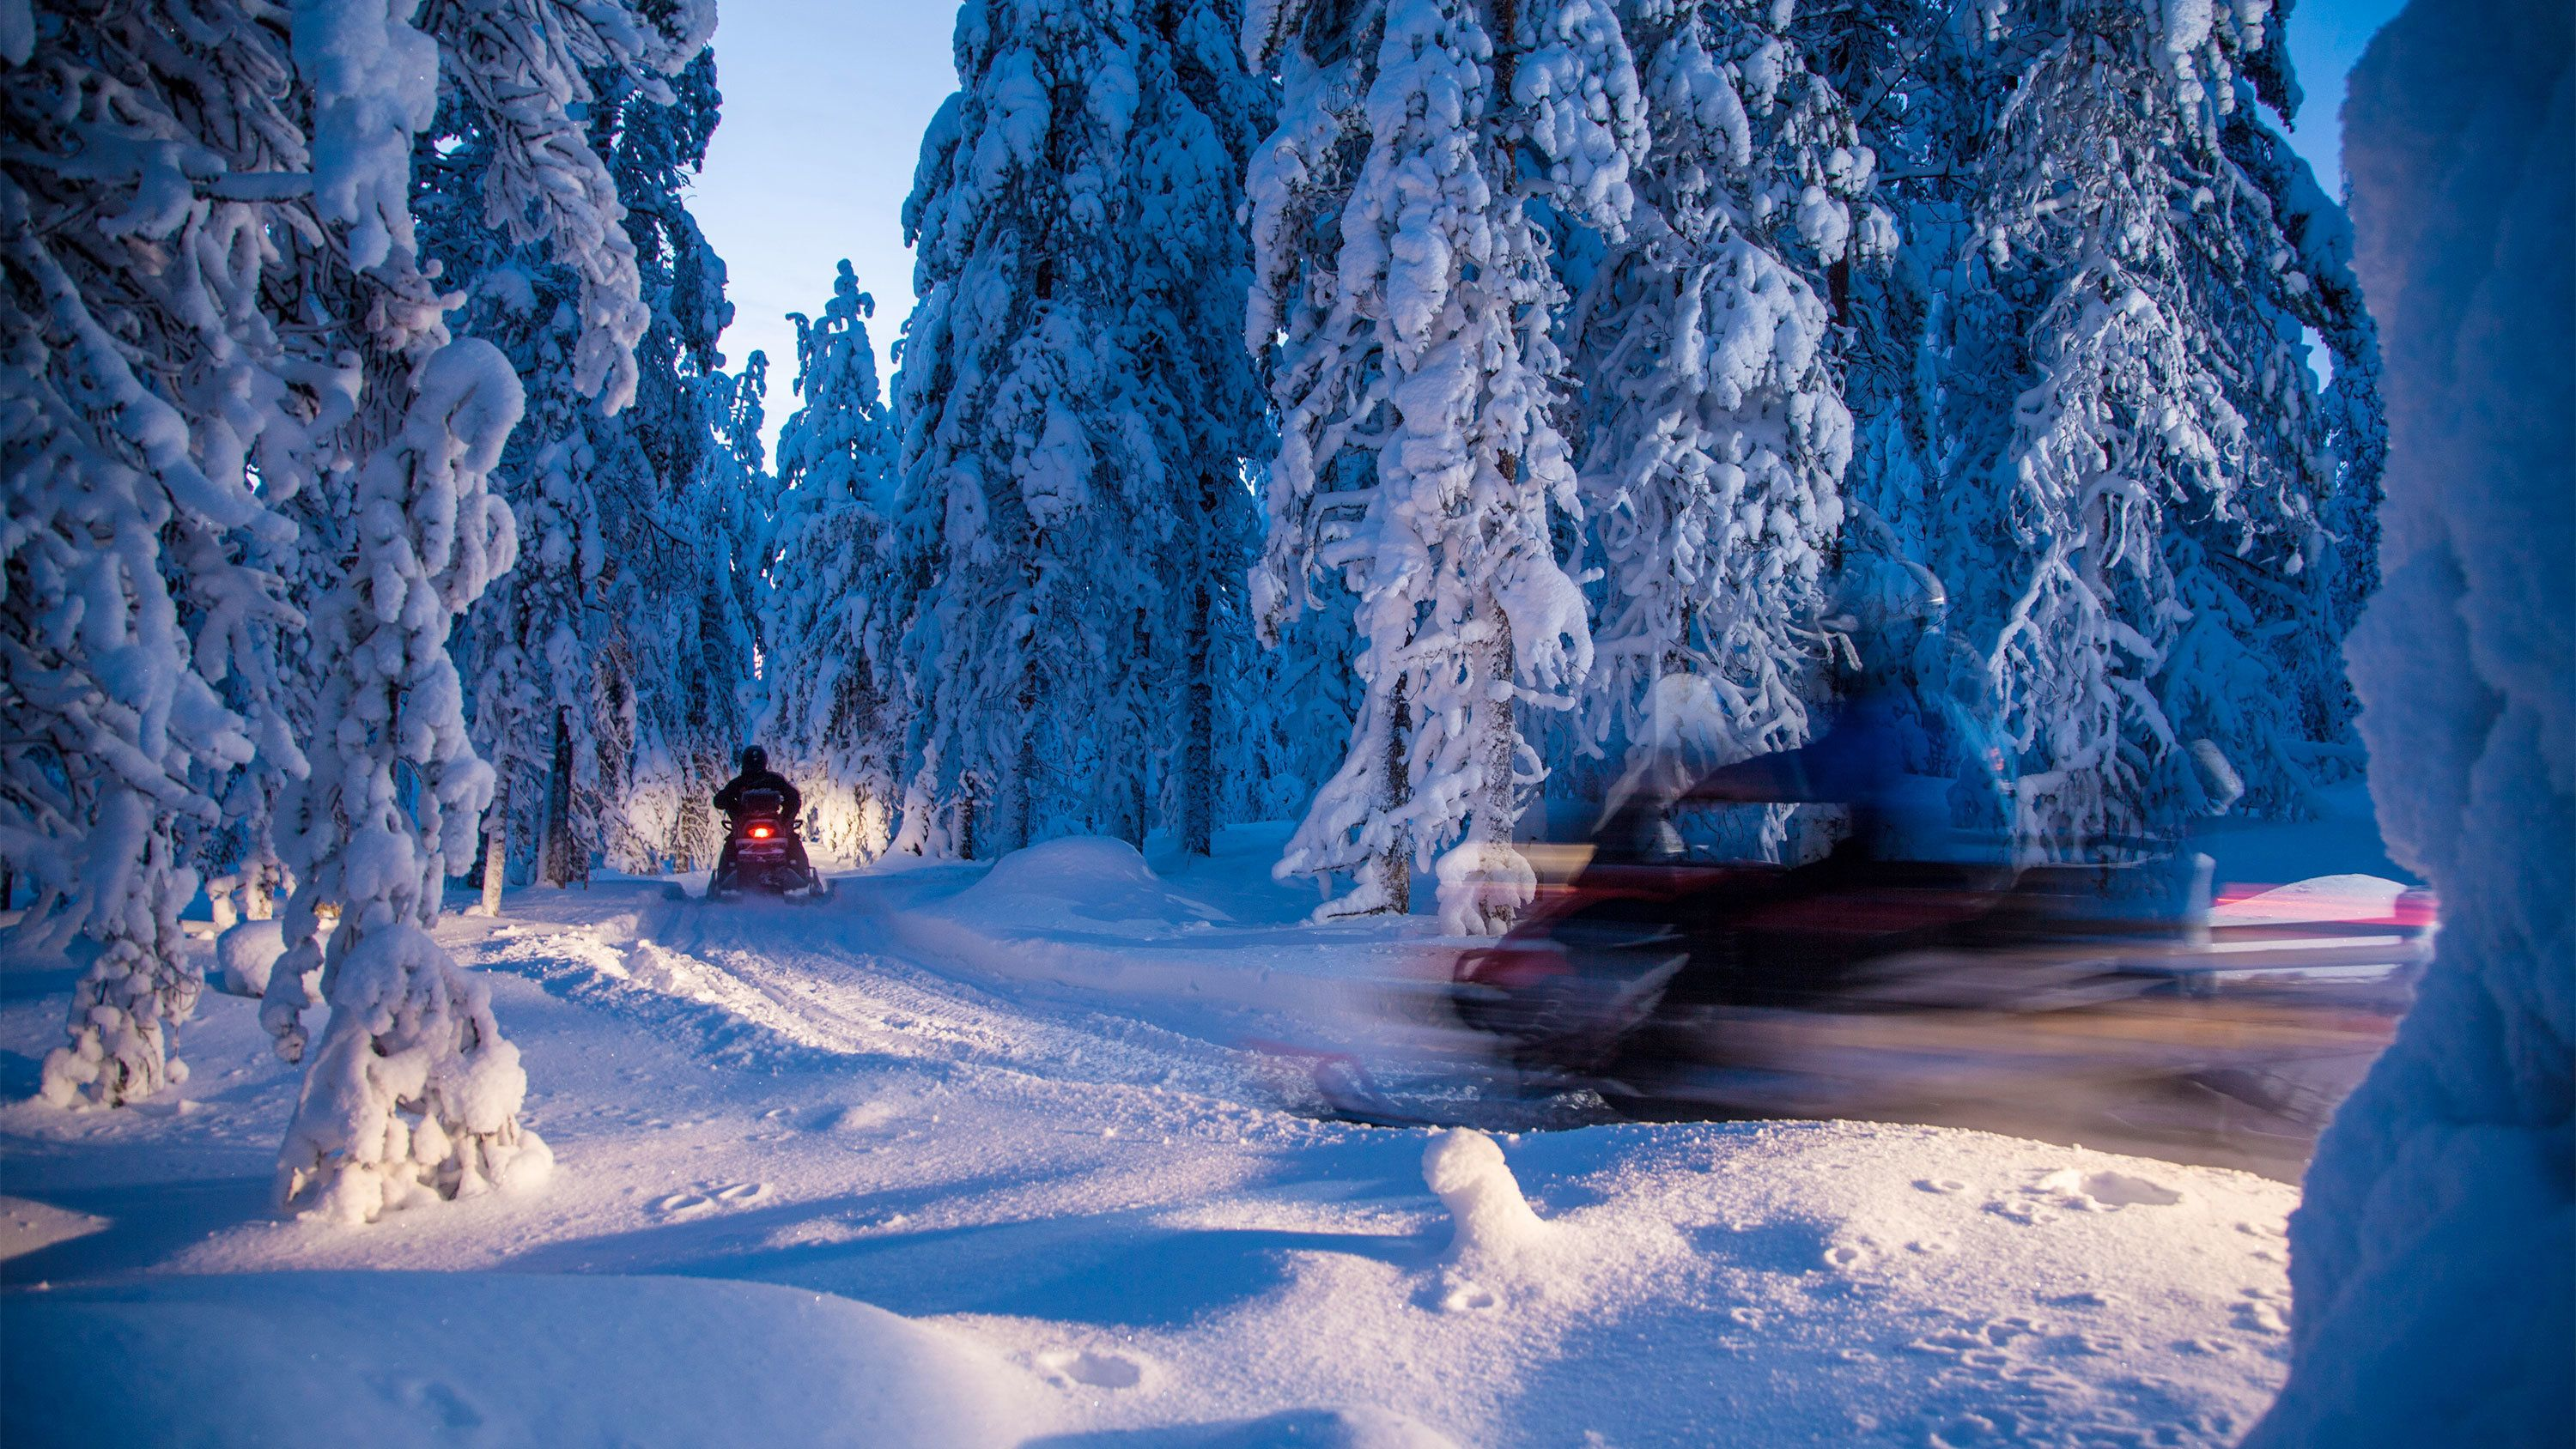 Snowmobiling in Finland